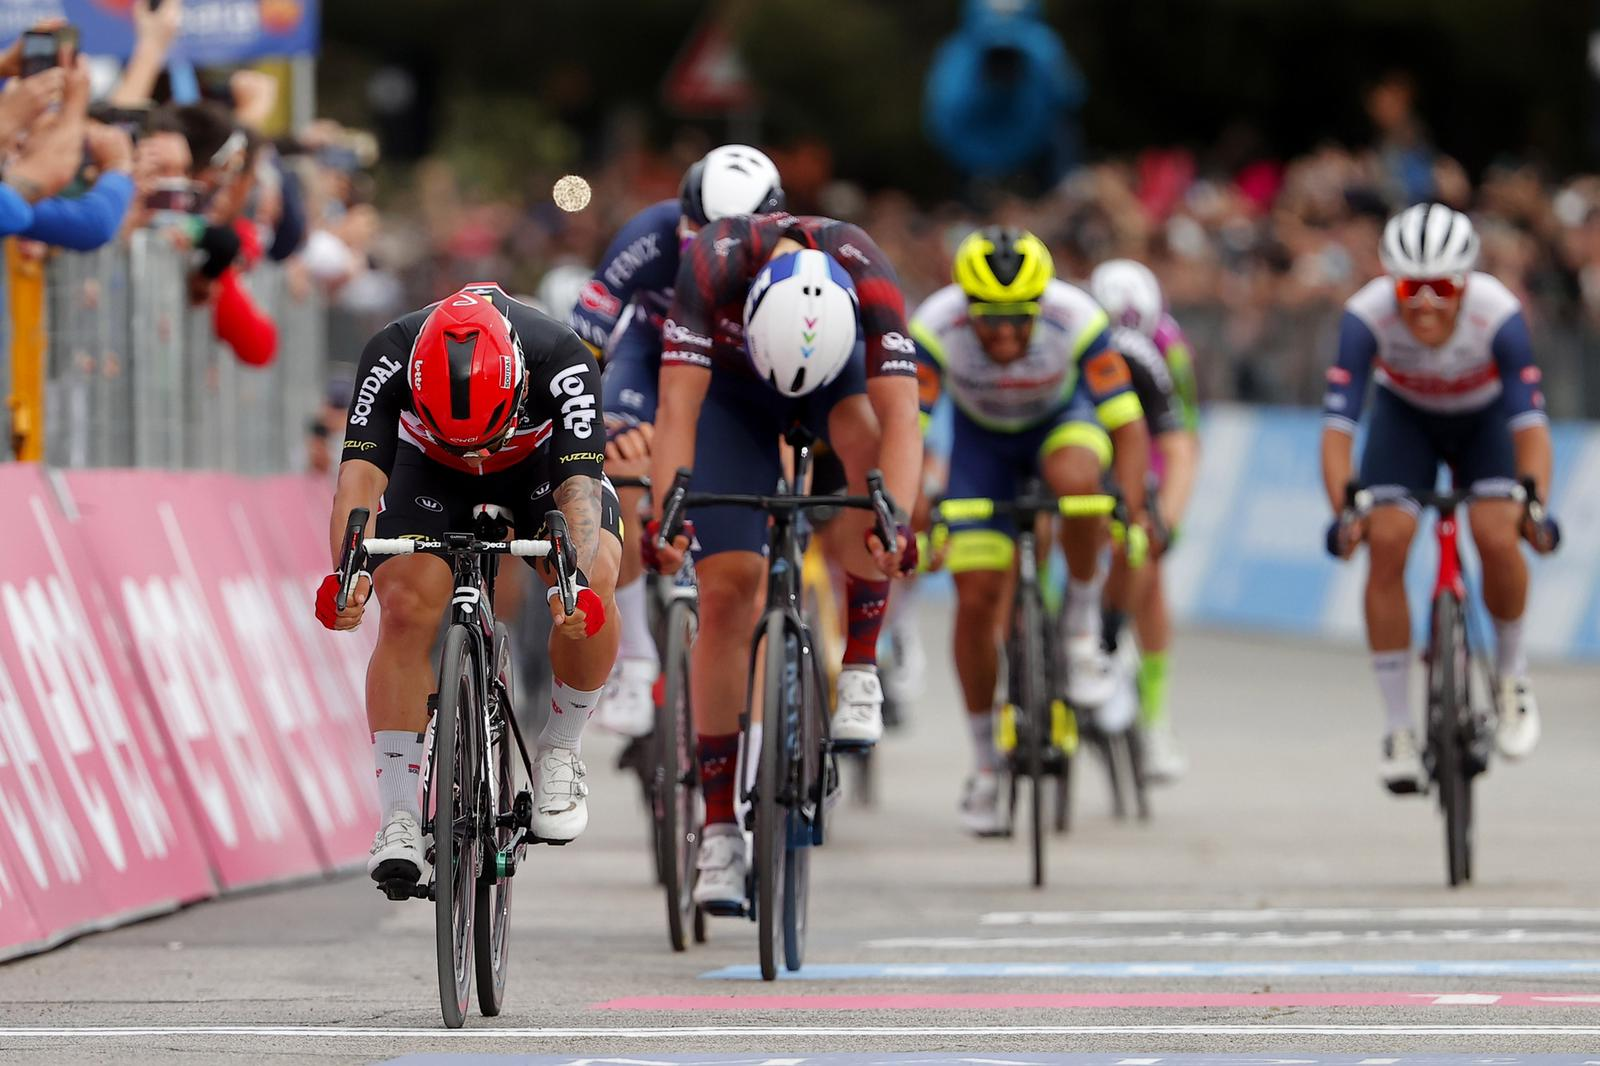 Second place for Cimolai on stage 7 of Giro d'Italia